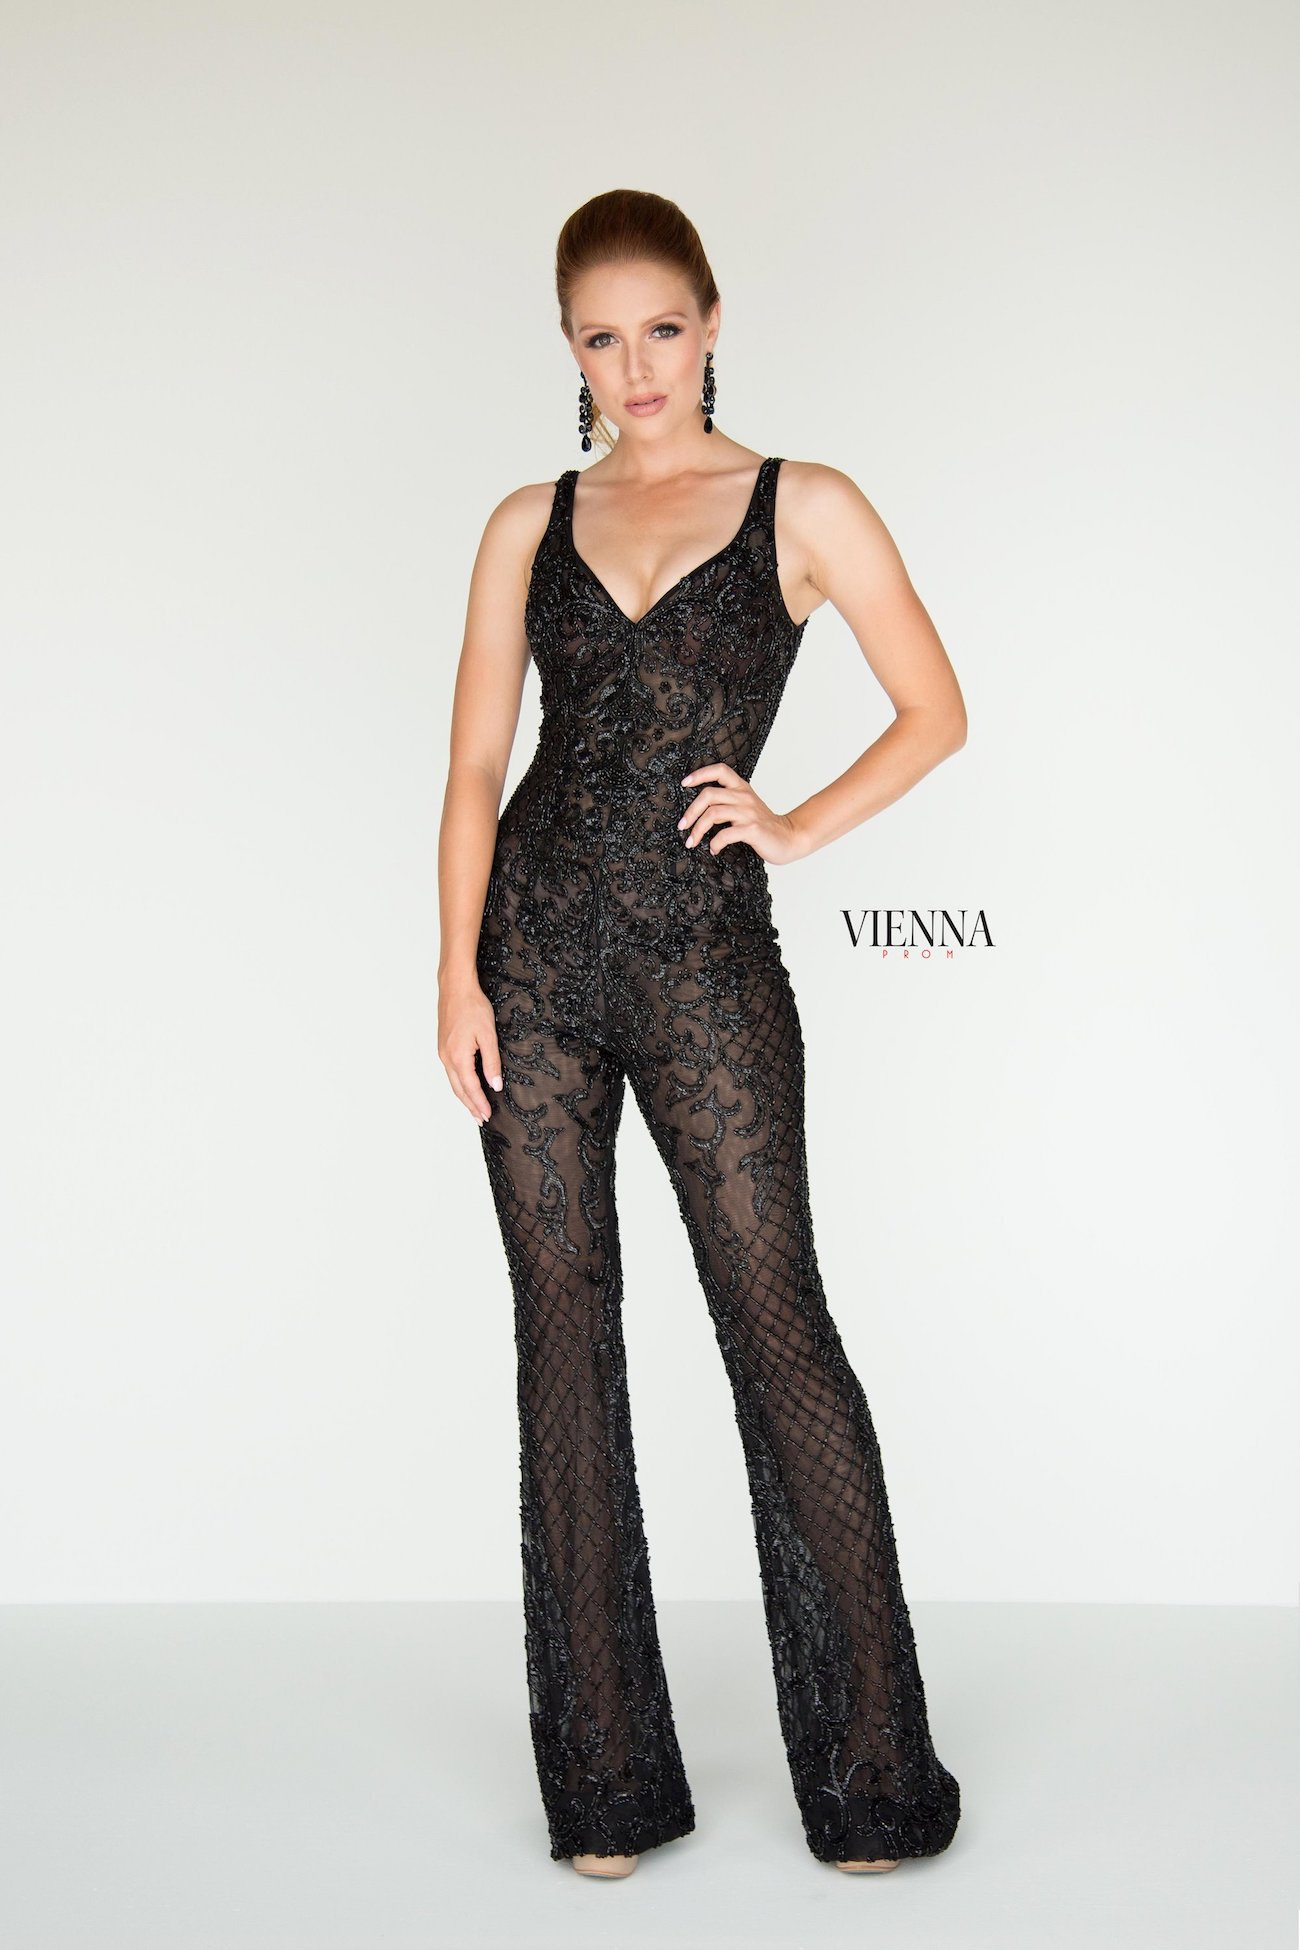 Style 9935 Vienna Black Size 00 Pageant Backless Tall Height Lace Romper/Jumpsuit Dress on Queenly